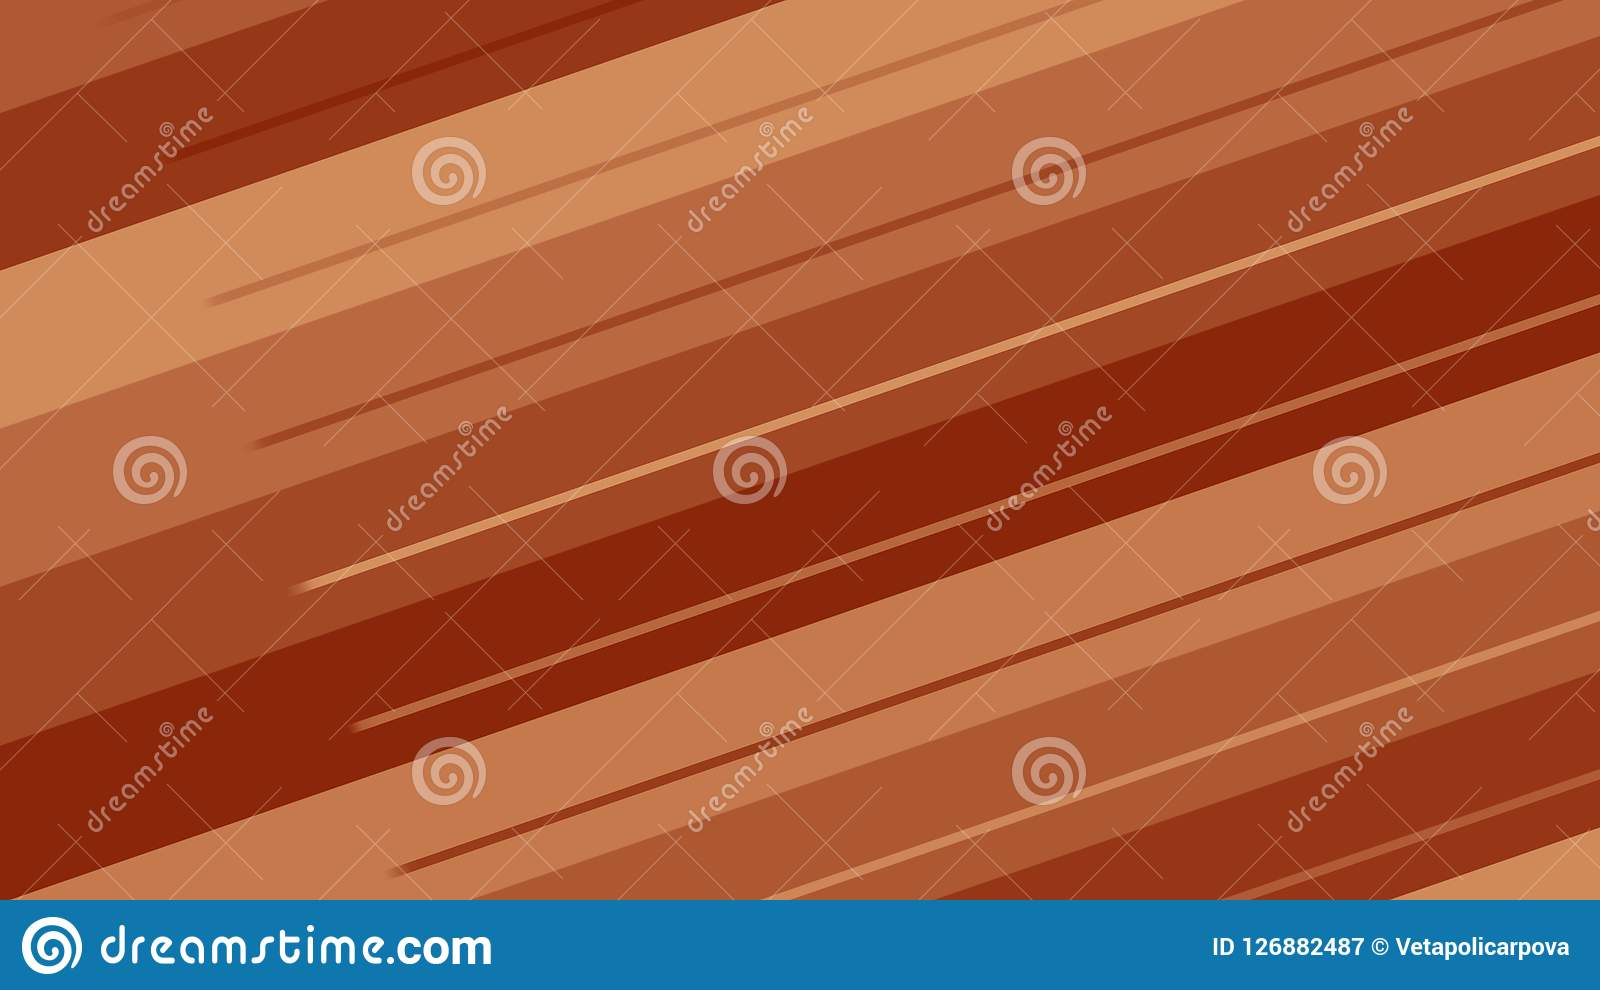 Background With Color Lines Different Shades And Thickness Stock Illustration Illustration Of Aesthetic Lines 126882487